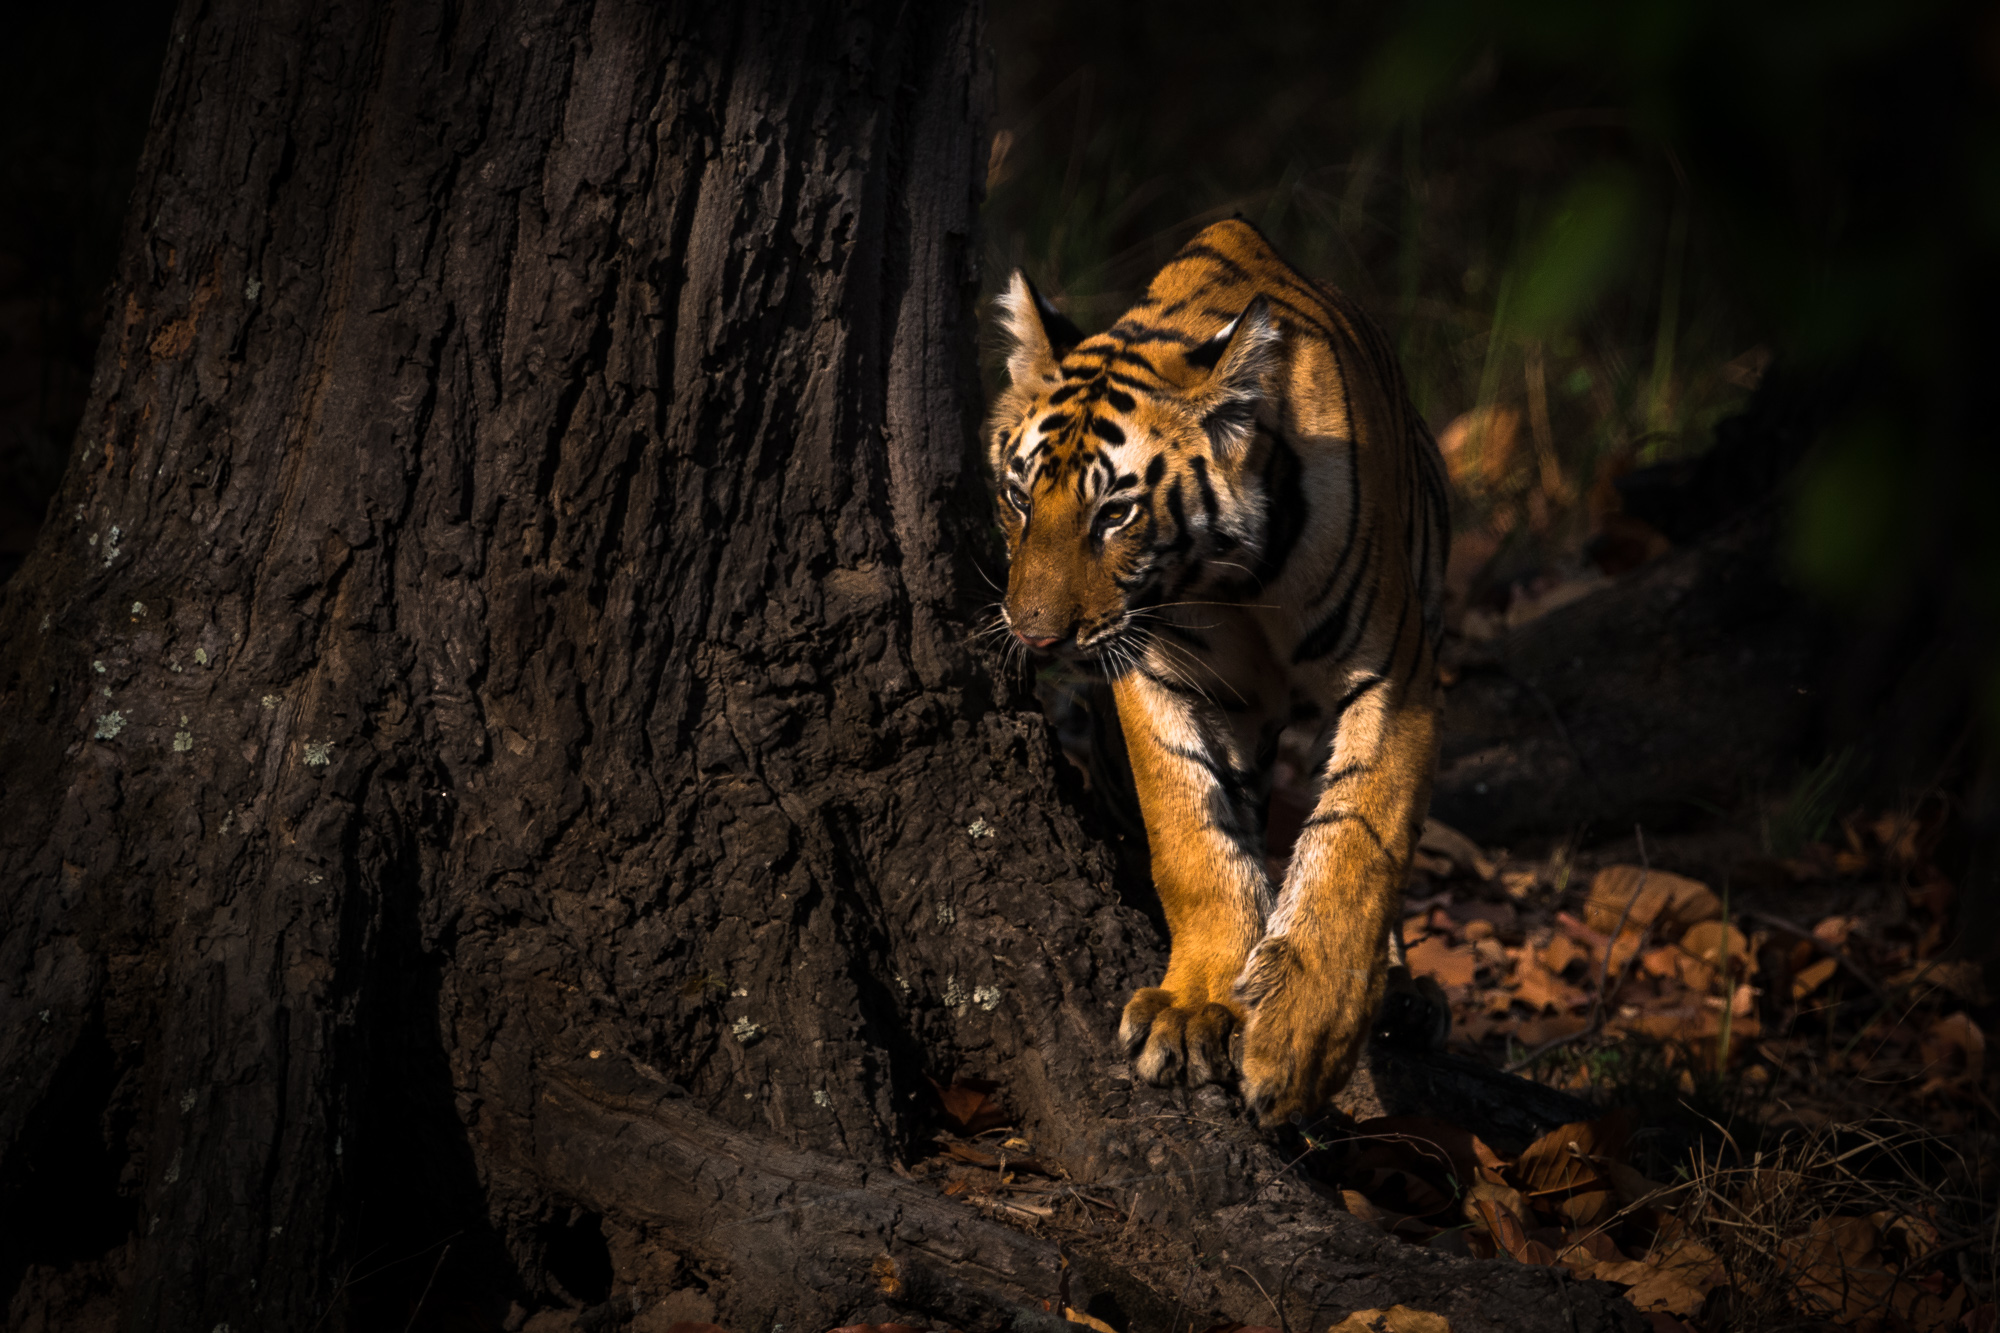 Tiger cubs are extremely curious. As they grow they like to explore every bit of their surroundings, like this 10 month old cub in Bandhavgarh National Park